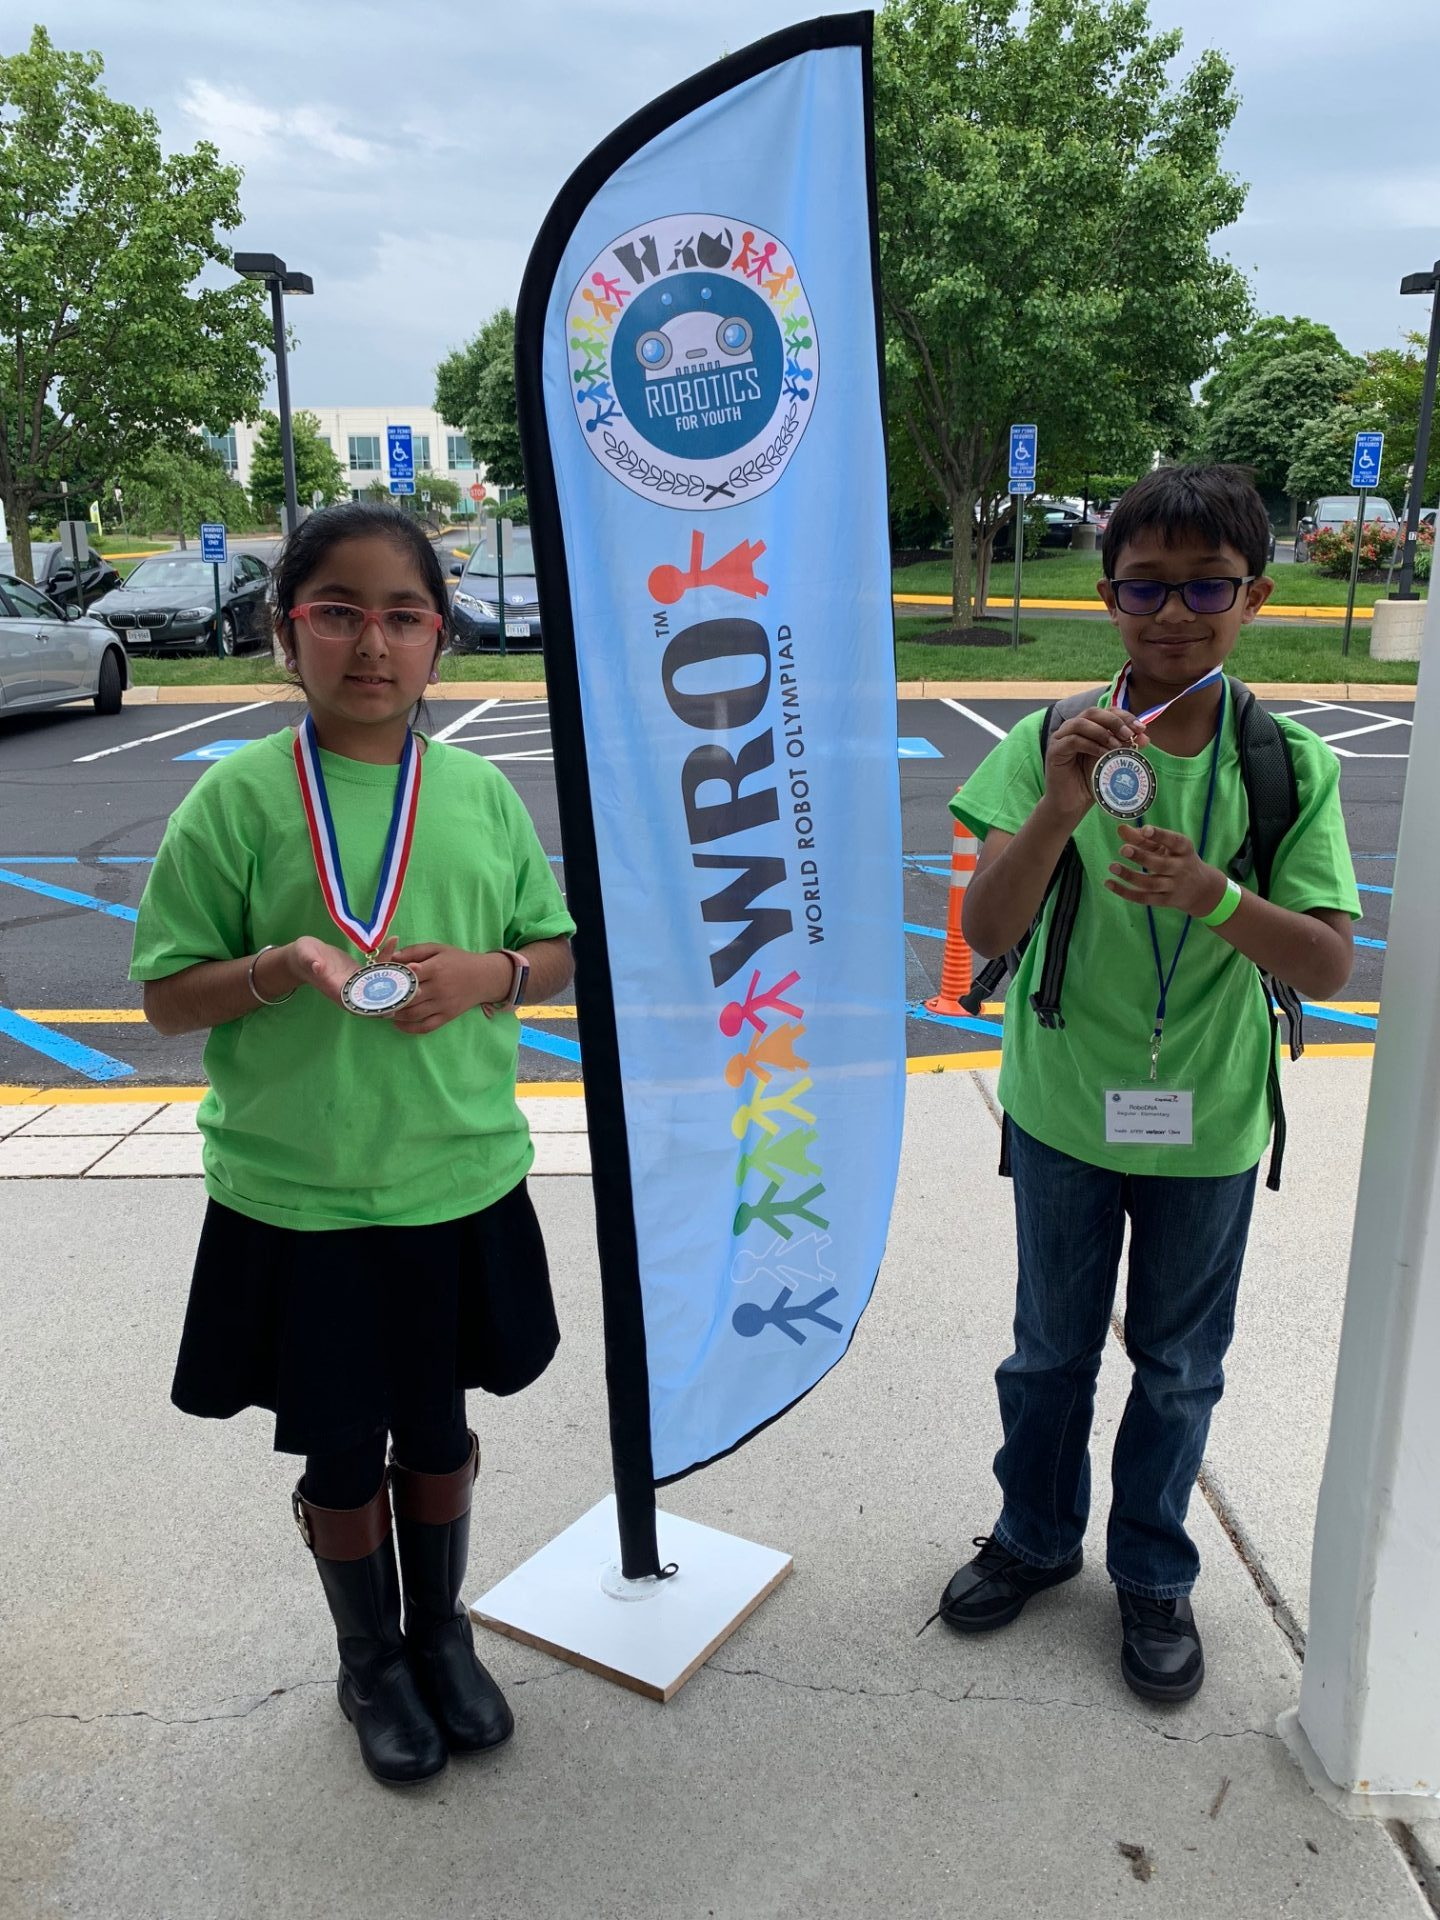 MAY 2019: WORLD ROBOT OLYMPIAD